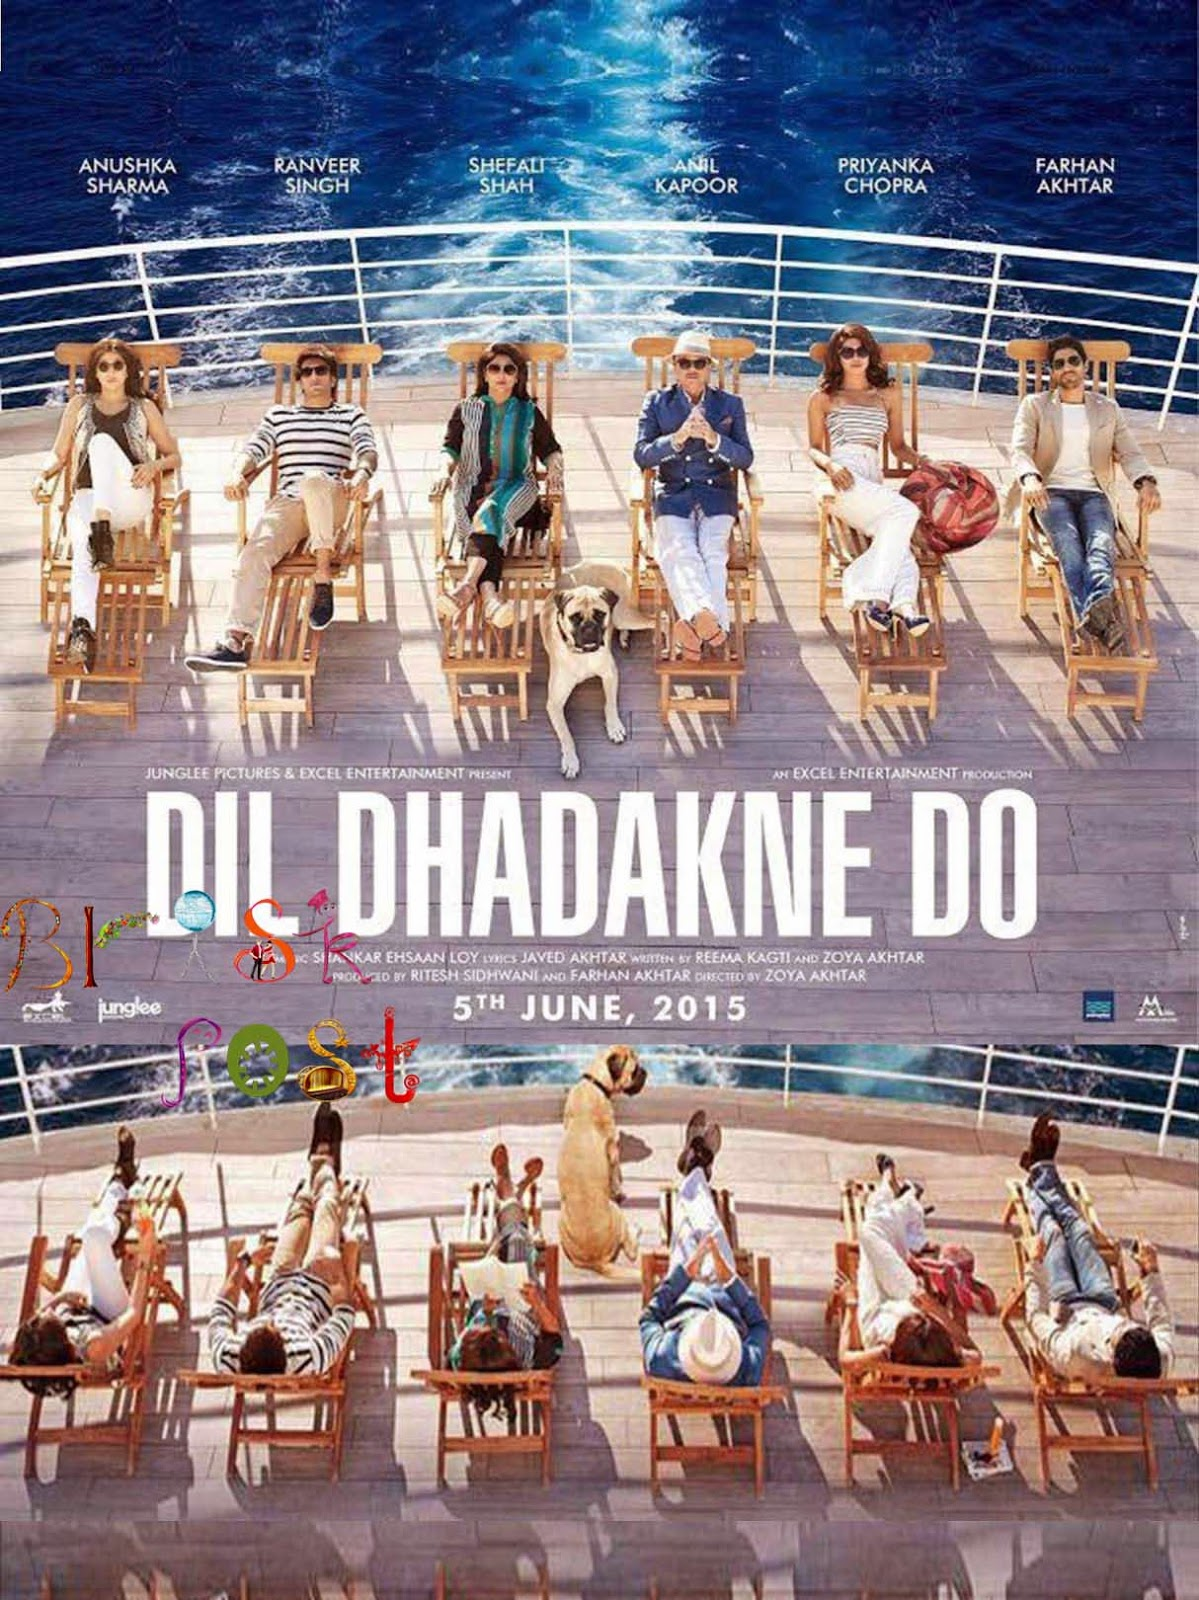 Dil Dhadakne Do Poster featuring Ranveer Singh, Priyanka Chopra, Anushka Sharma, Anil Kapoor, Farhan AKhtar, and Shefali cruising in a ship